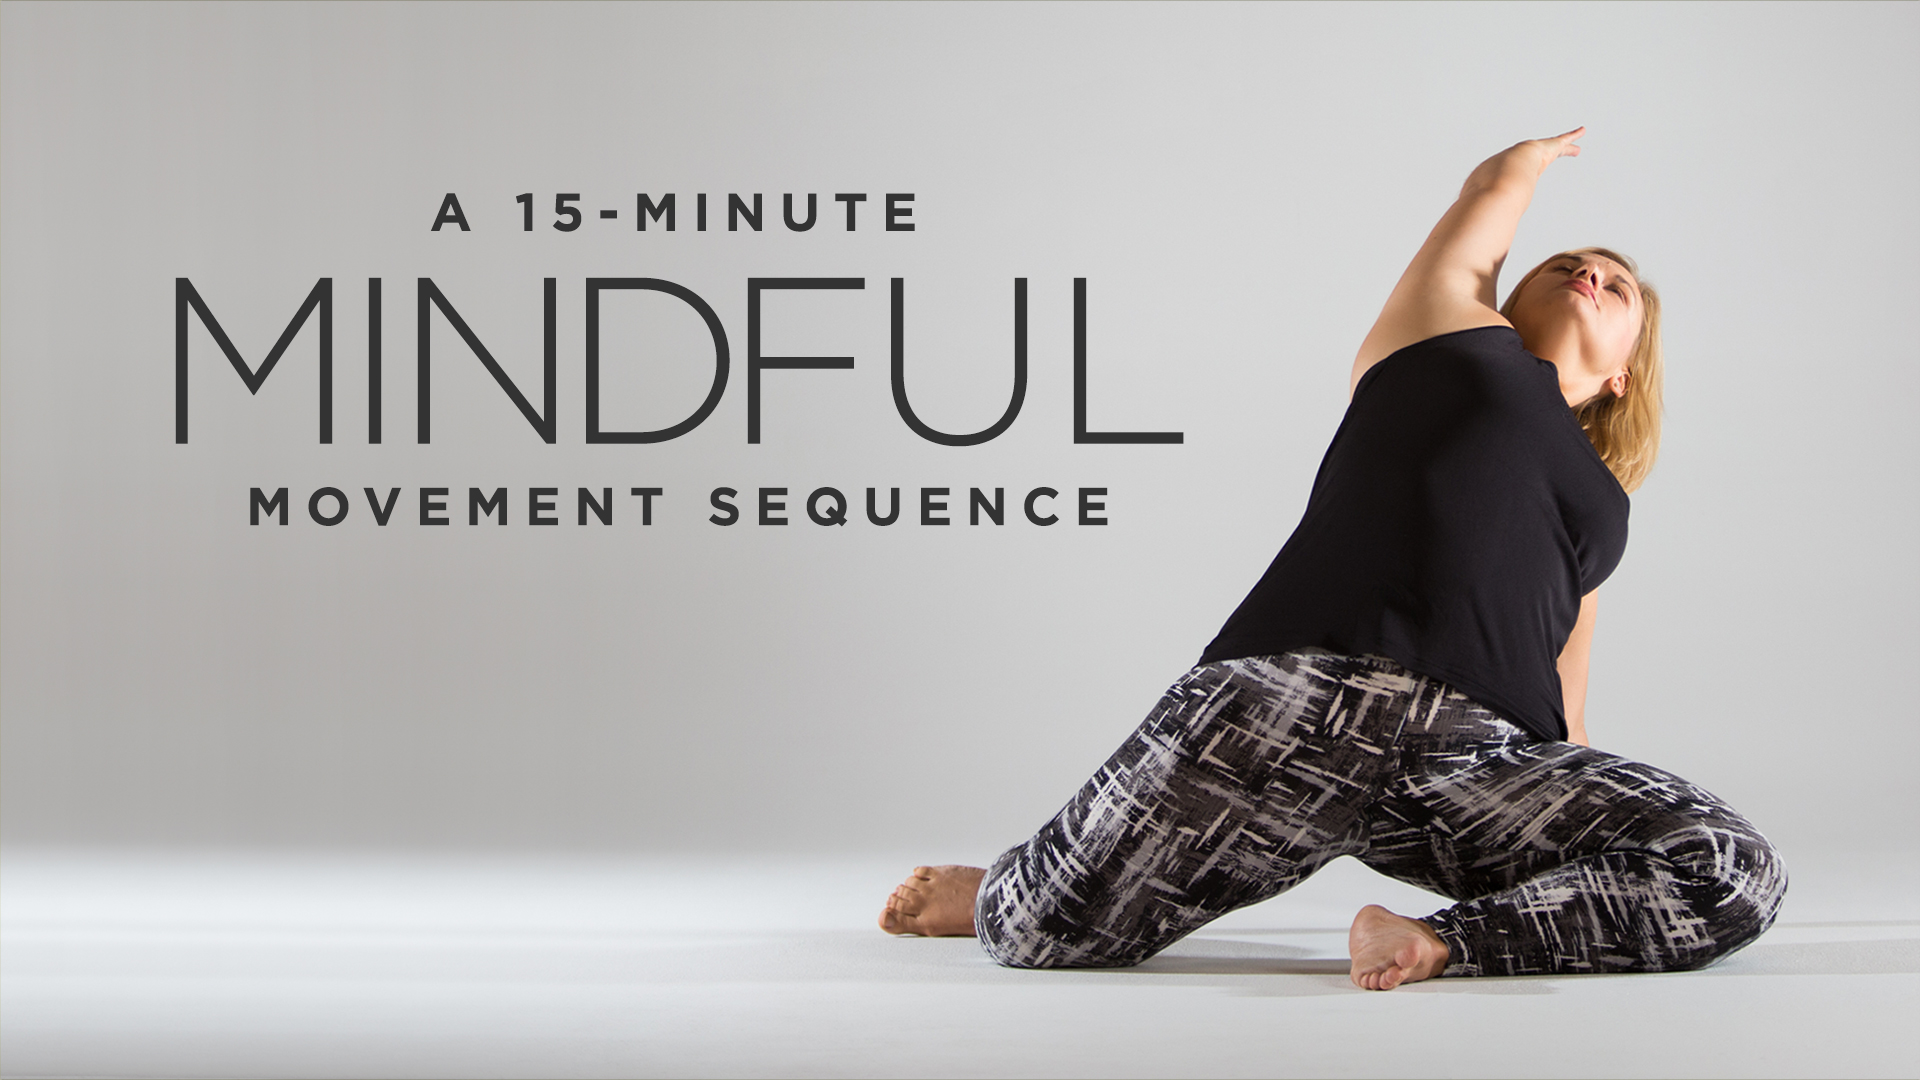 A 15-Minute Mindful Movement Sequence